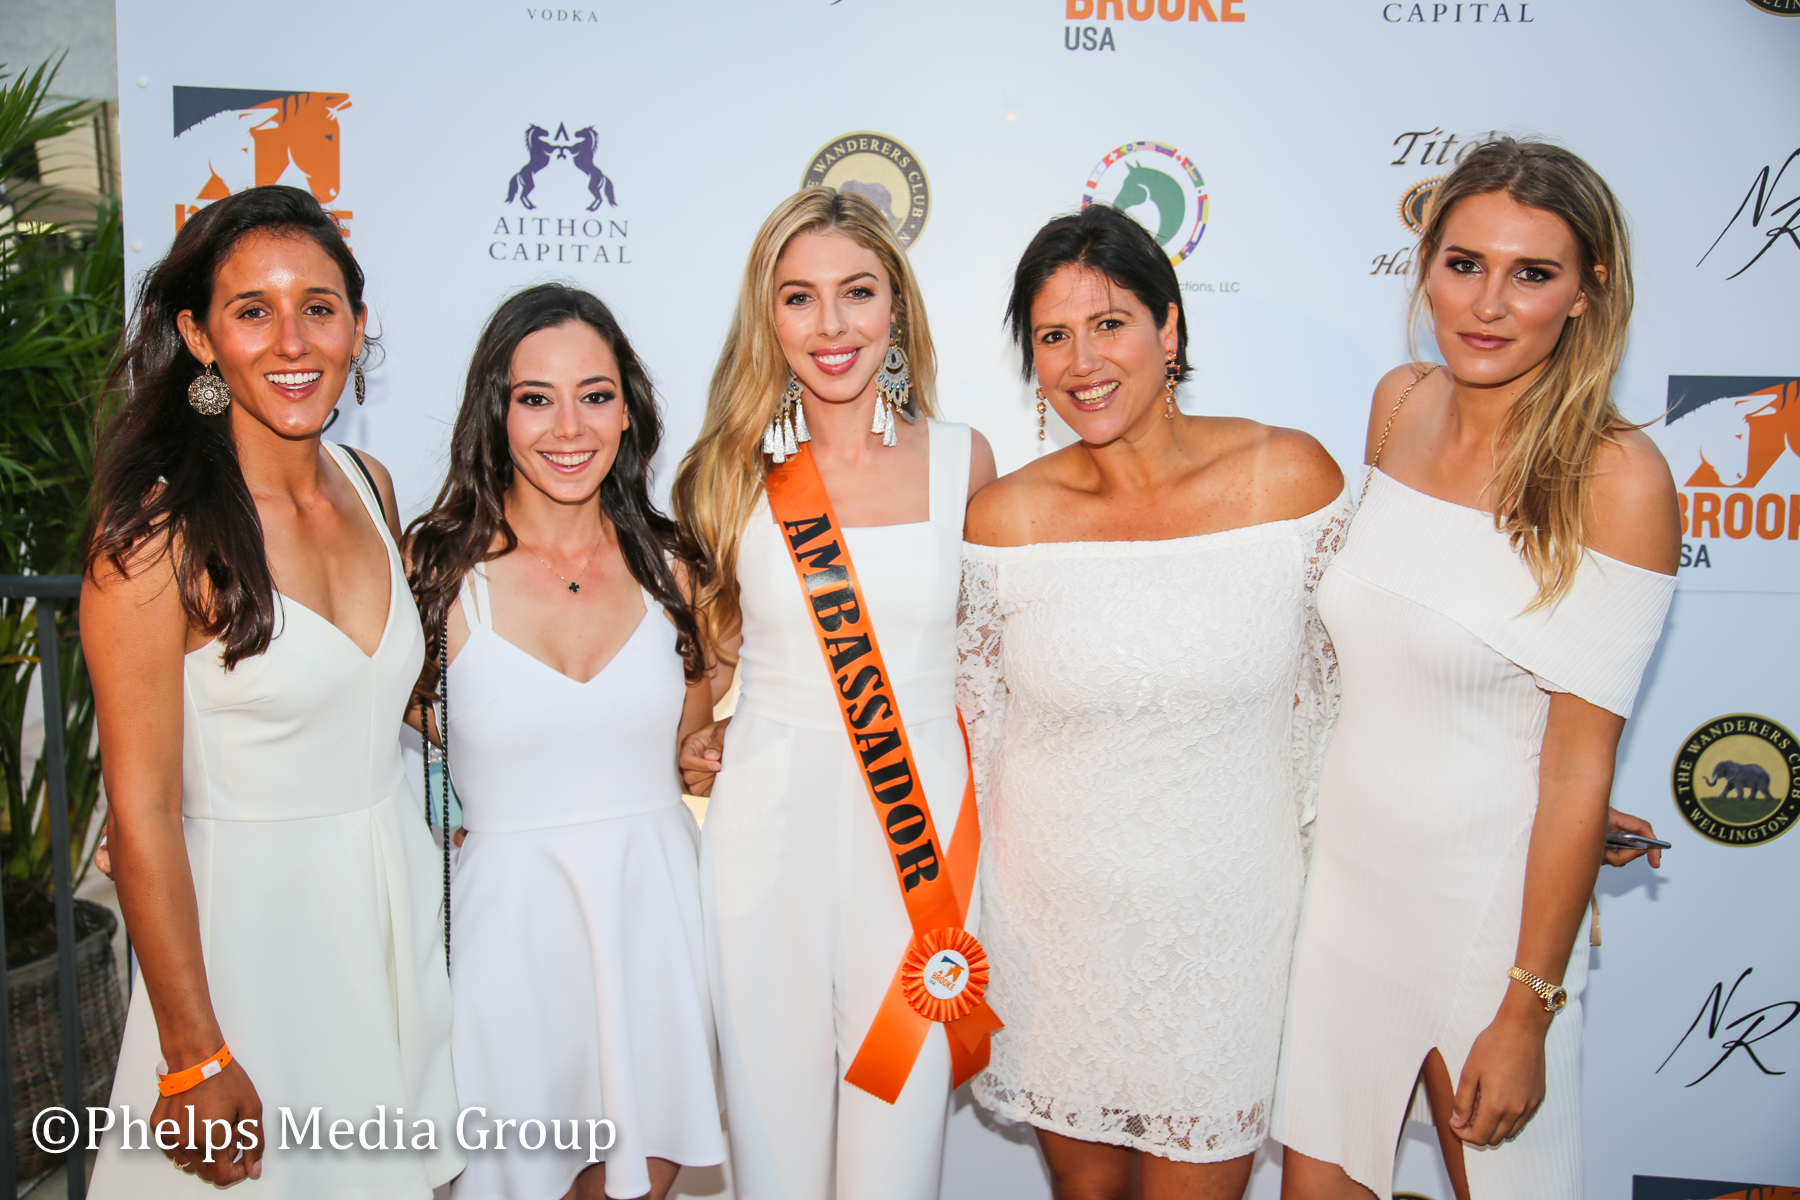 Hannah Selleck and Friends; Nic Roldan's 2nd Annual Sunset Polo & White Party, FL, by Phelps Media (2).jpg